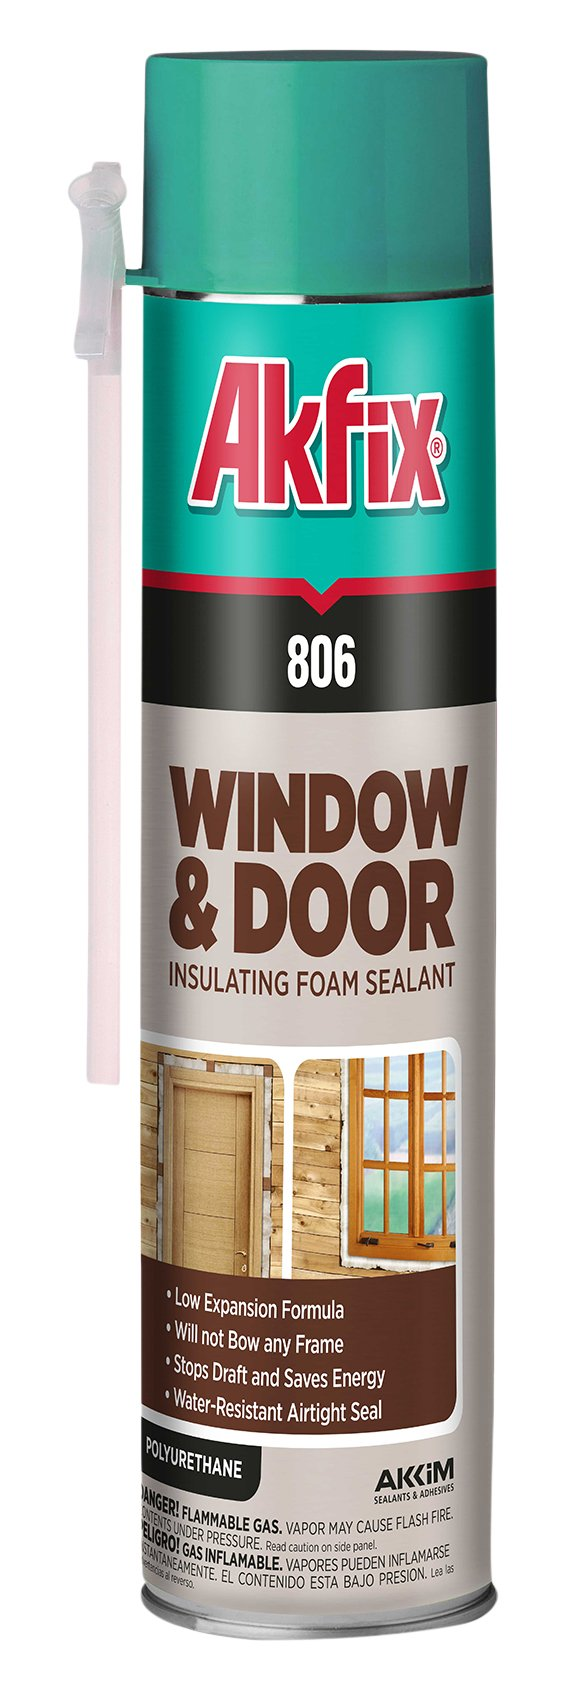 Akfix 806 Window and Door Insulating Foam Sealant, 24 oz. Straw Can, Low Expansion (Pack of 12)